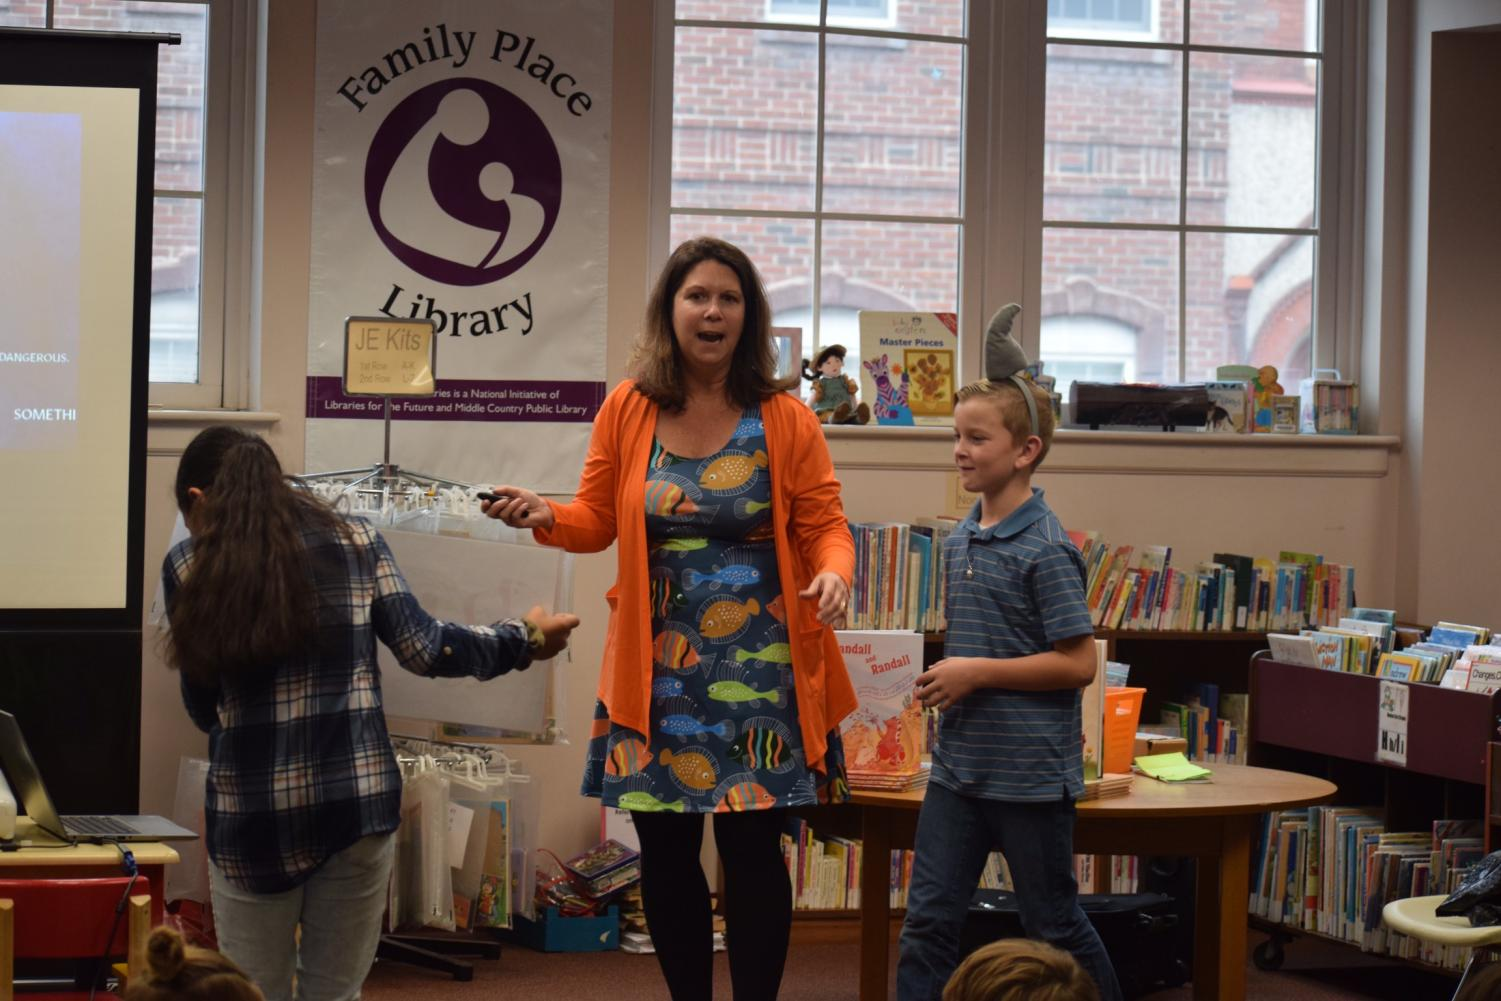 """Nadine Popper, a school librarian and author, engages with students from Mrs. Barr's class. Popper is the author of """"Randall and Randall"""" which she read to the students. """"I enjoyed that the author let the kids participate in the program,"""" said third grader Kennedy Holden."""